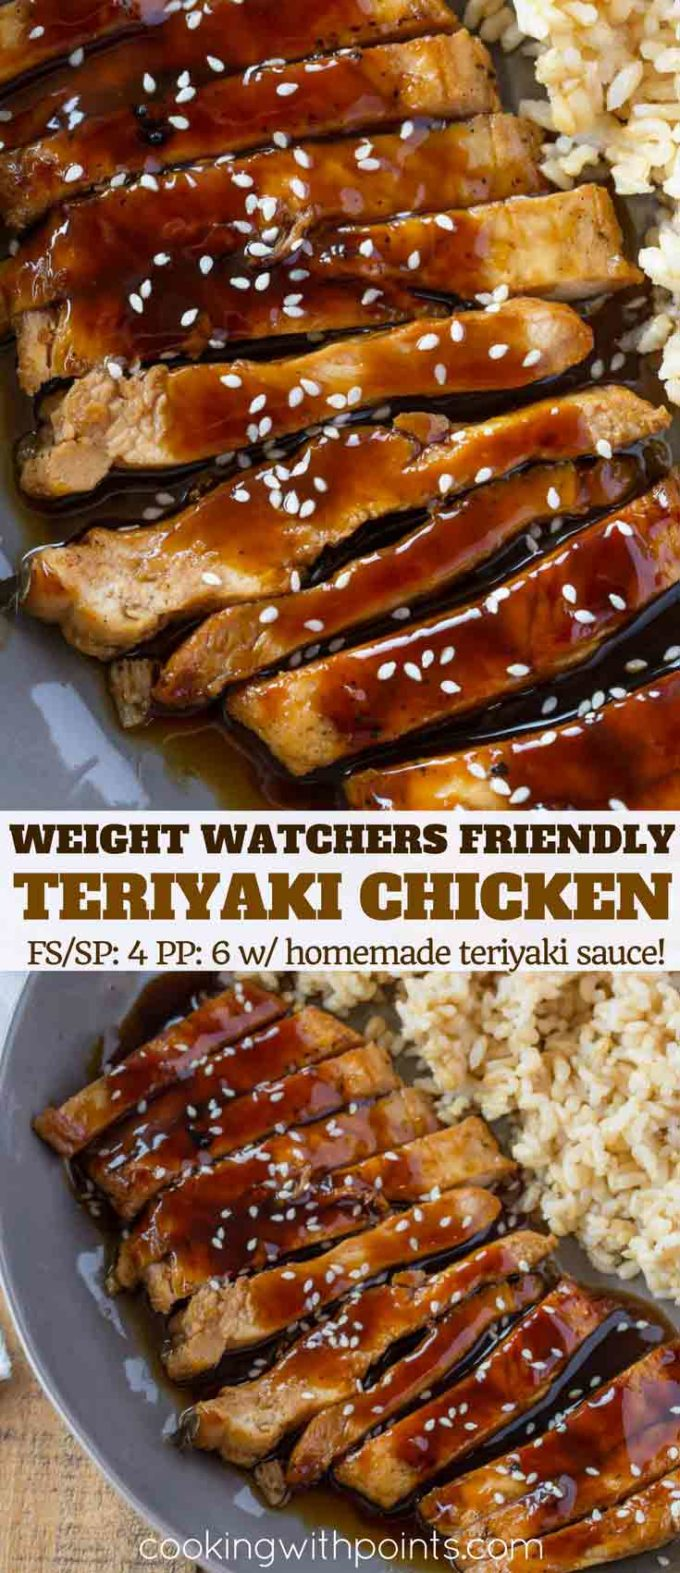 Weight Watchers Friendly Teriyaki Chicken